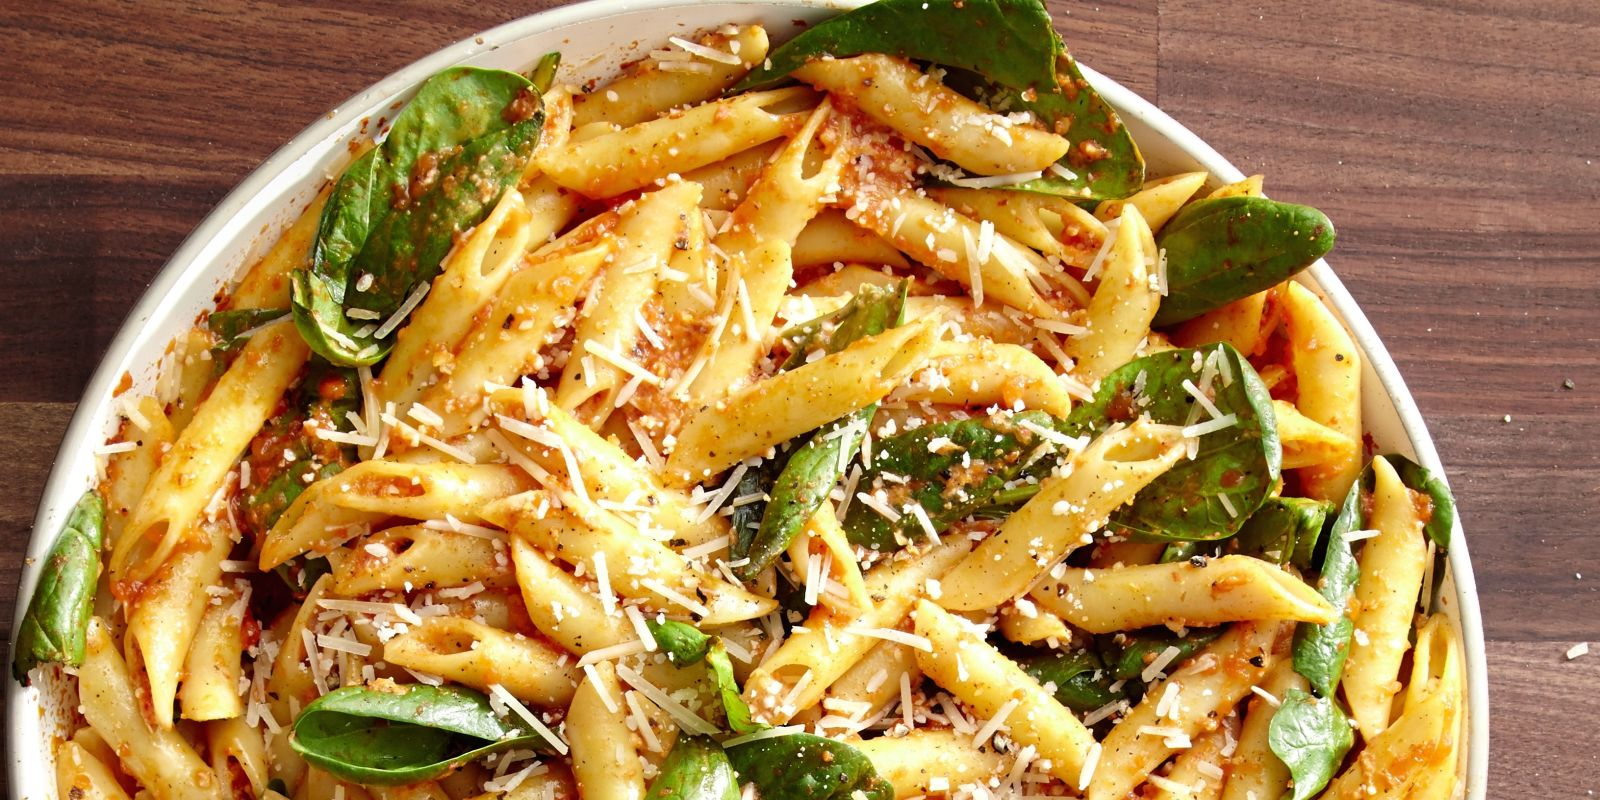 Roasted Red Pepper Pesto Penne - How to Make Roasted Red Pepper Pesto ...